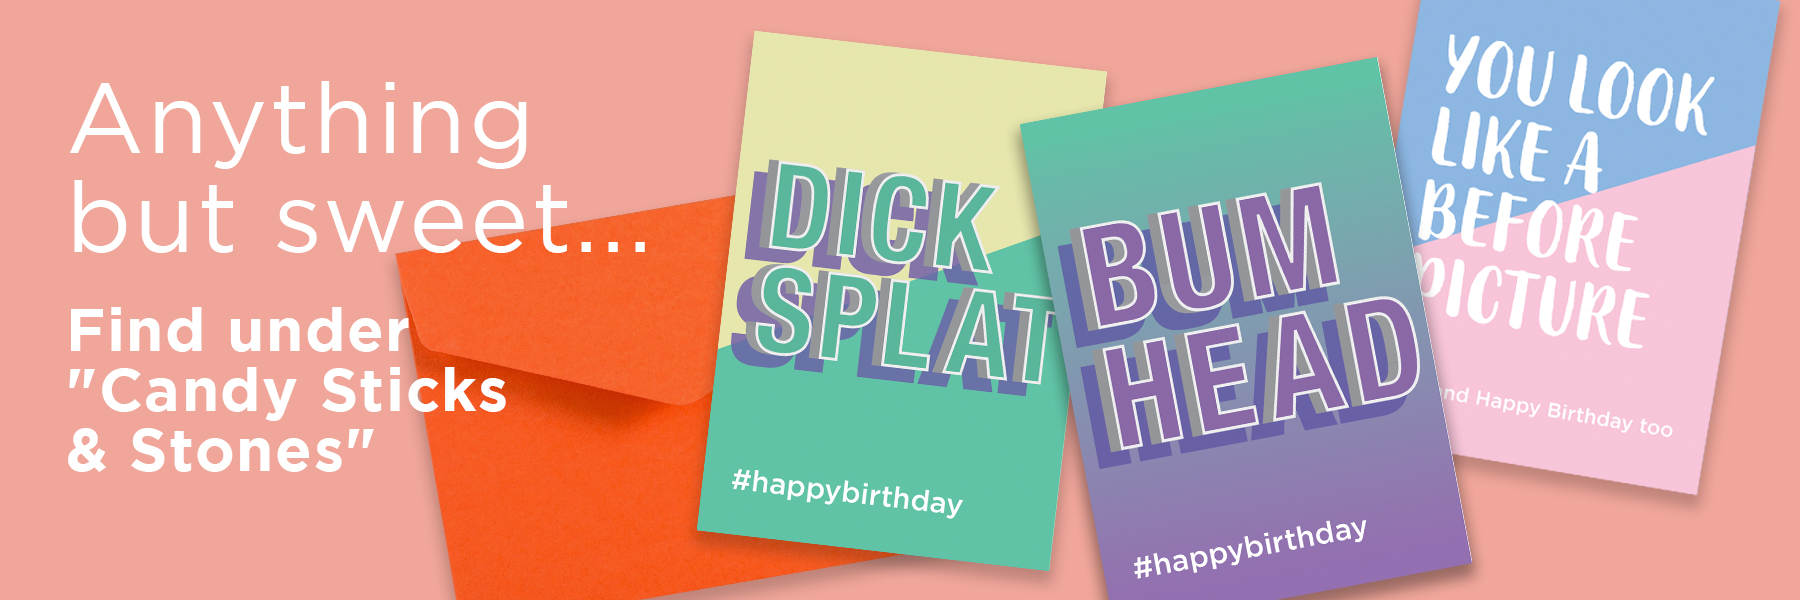 Rude, Funny, Offensive Cards from CardShit.com